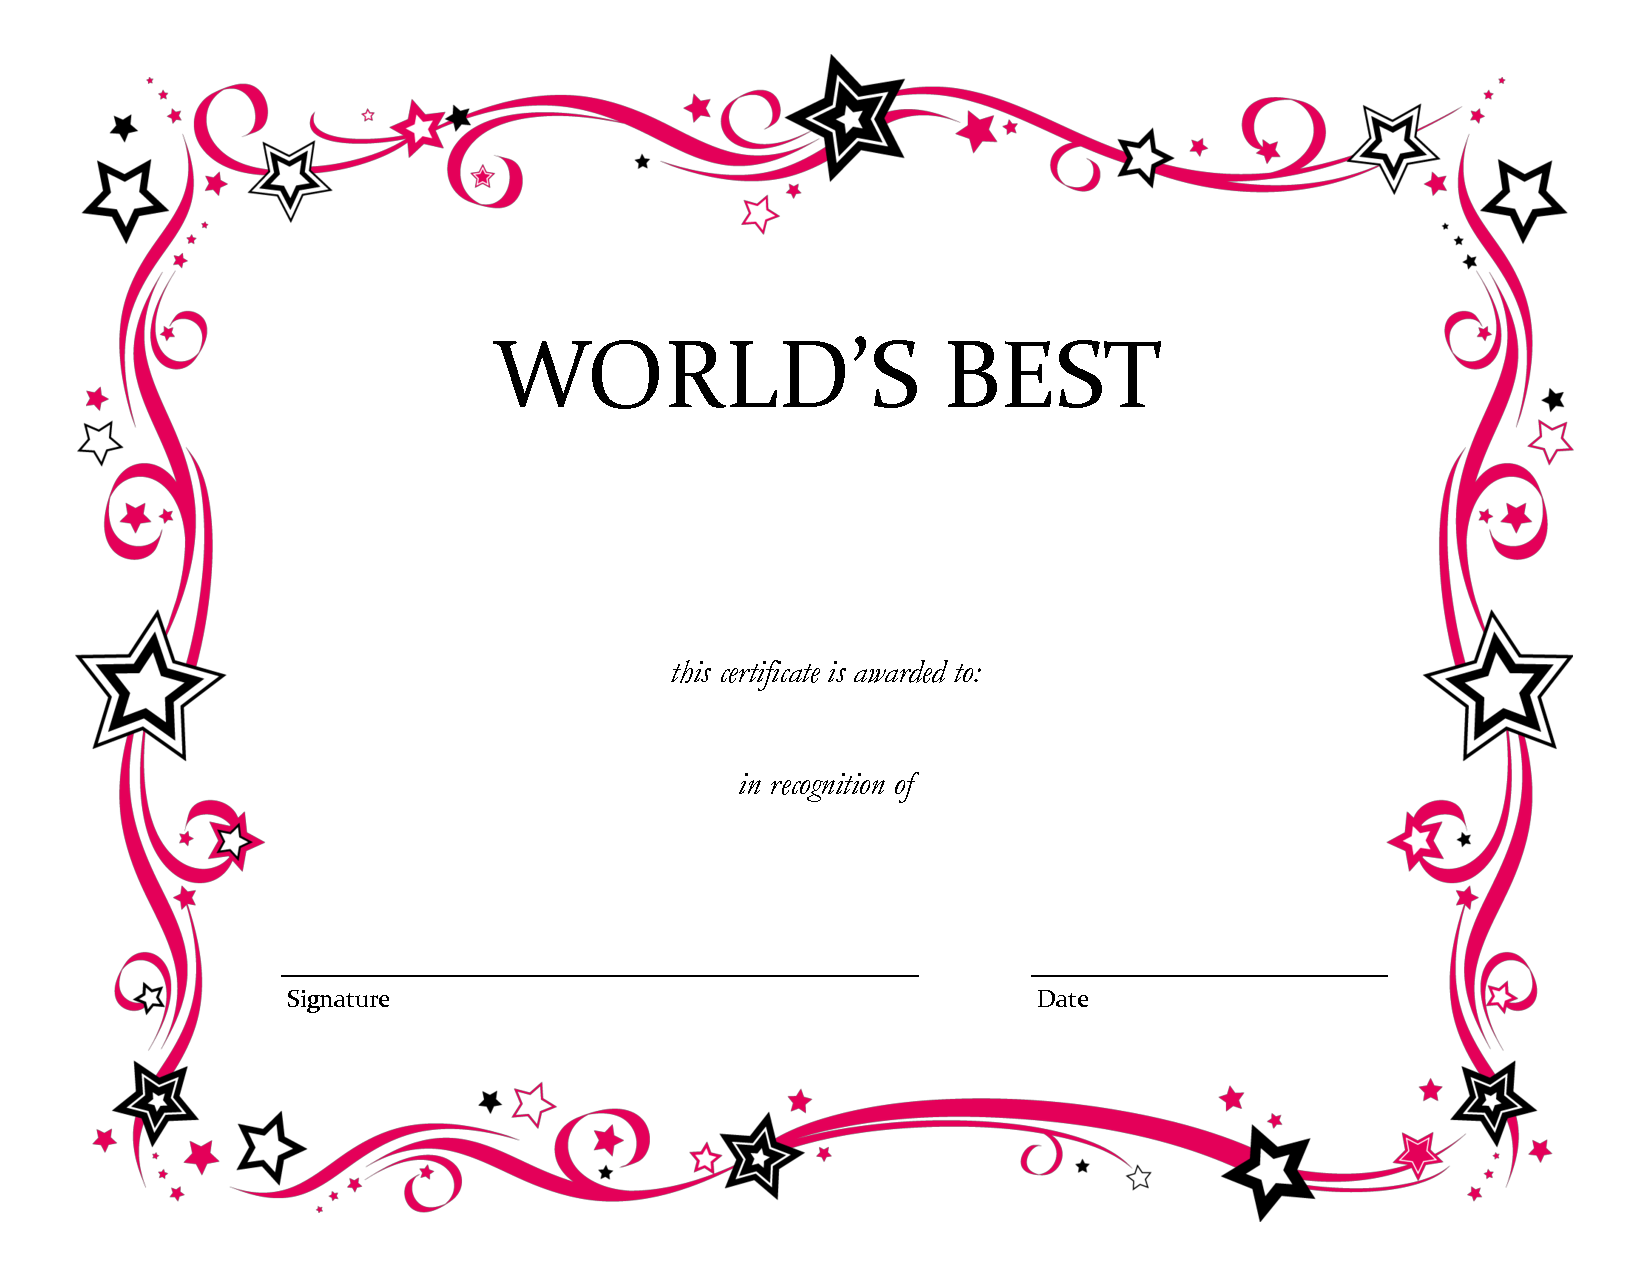 Free printable blank award certificate templates diy pinterest free and high quality blank certificate templates are here for you who want to give great gifts and rewards for your students children or your loved ones xflitez Image collections